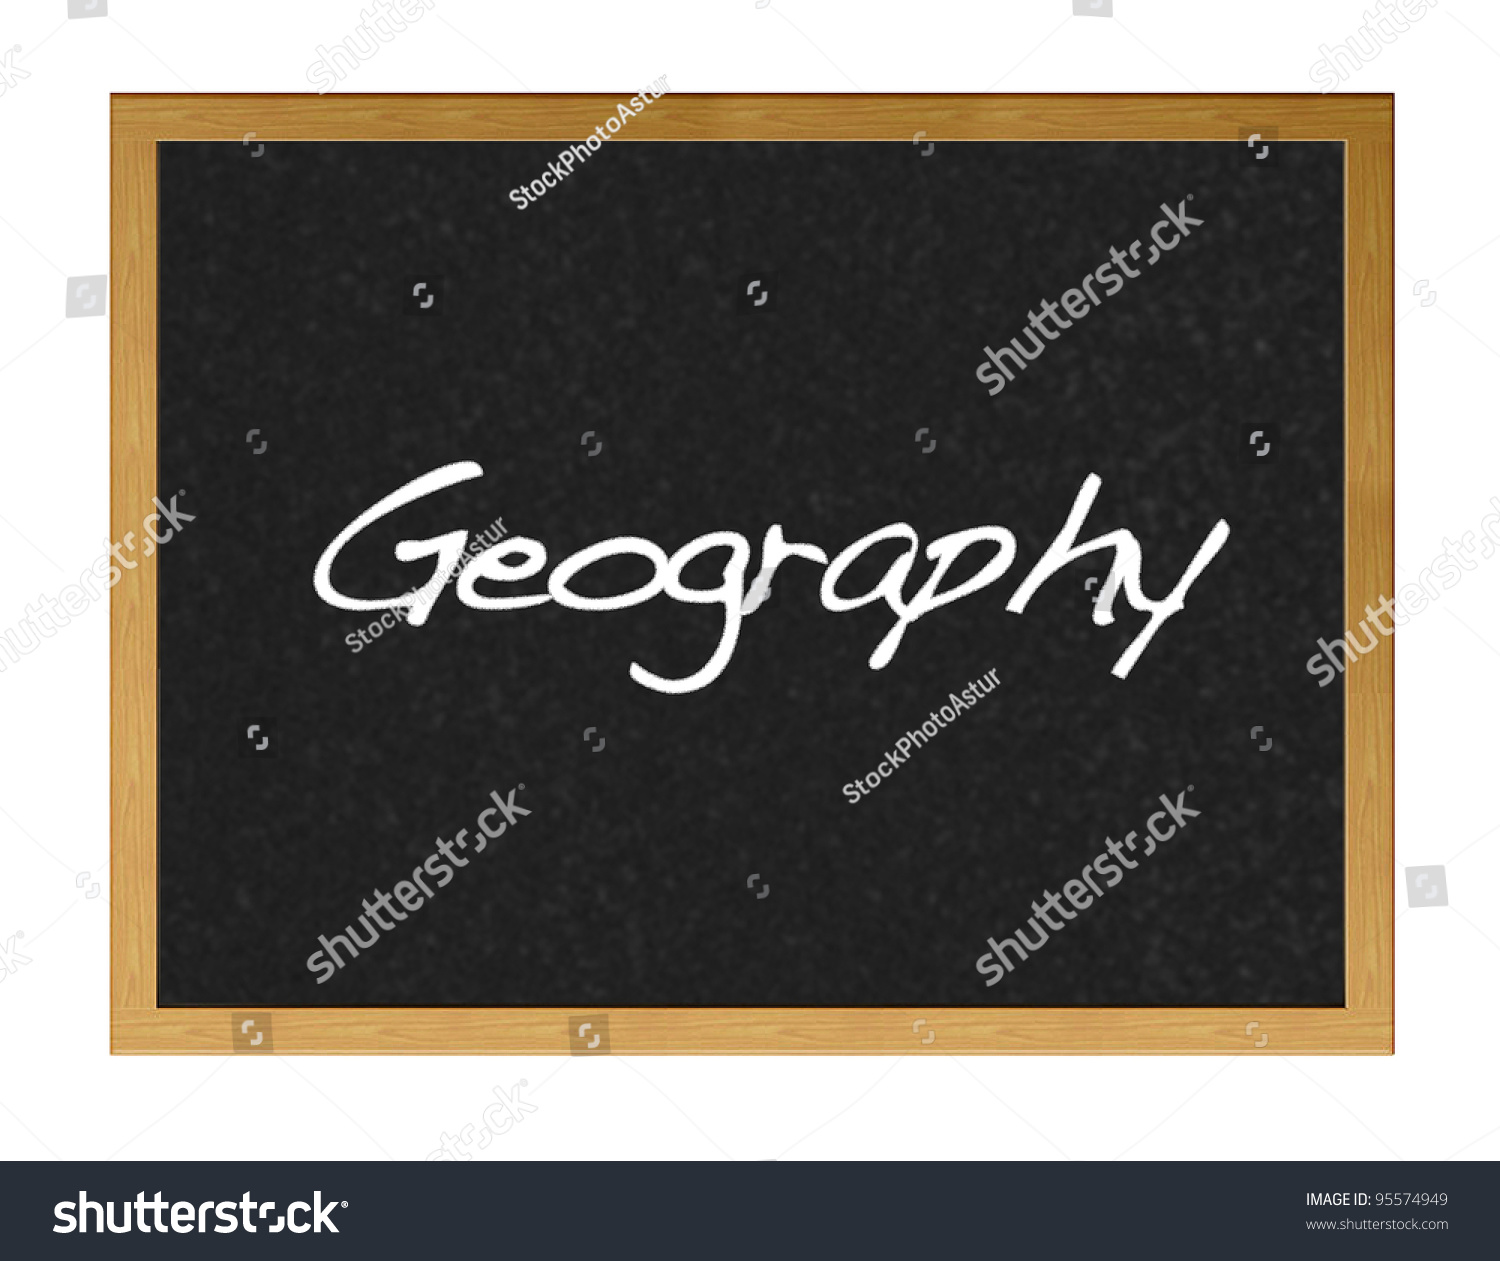 Deciding stock illustrations royalty free gograph - Blackboard With The Word Geography